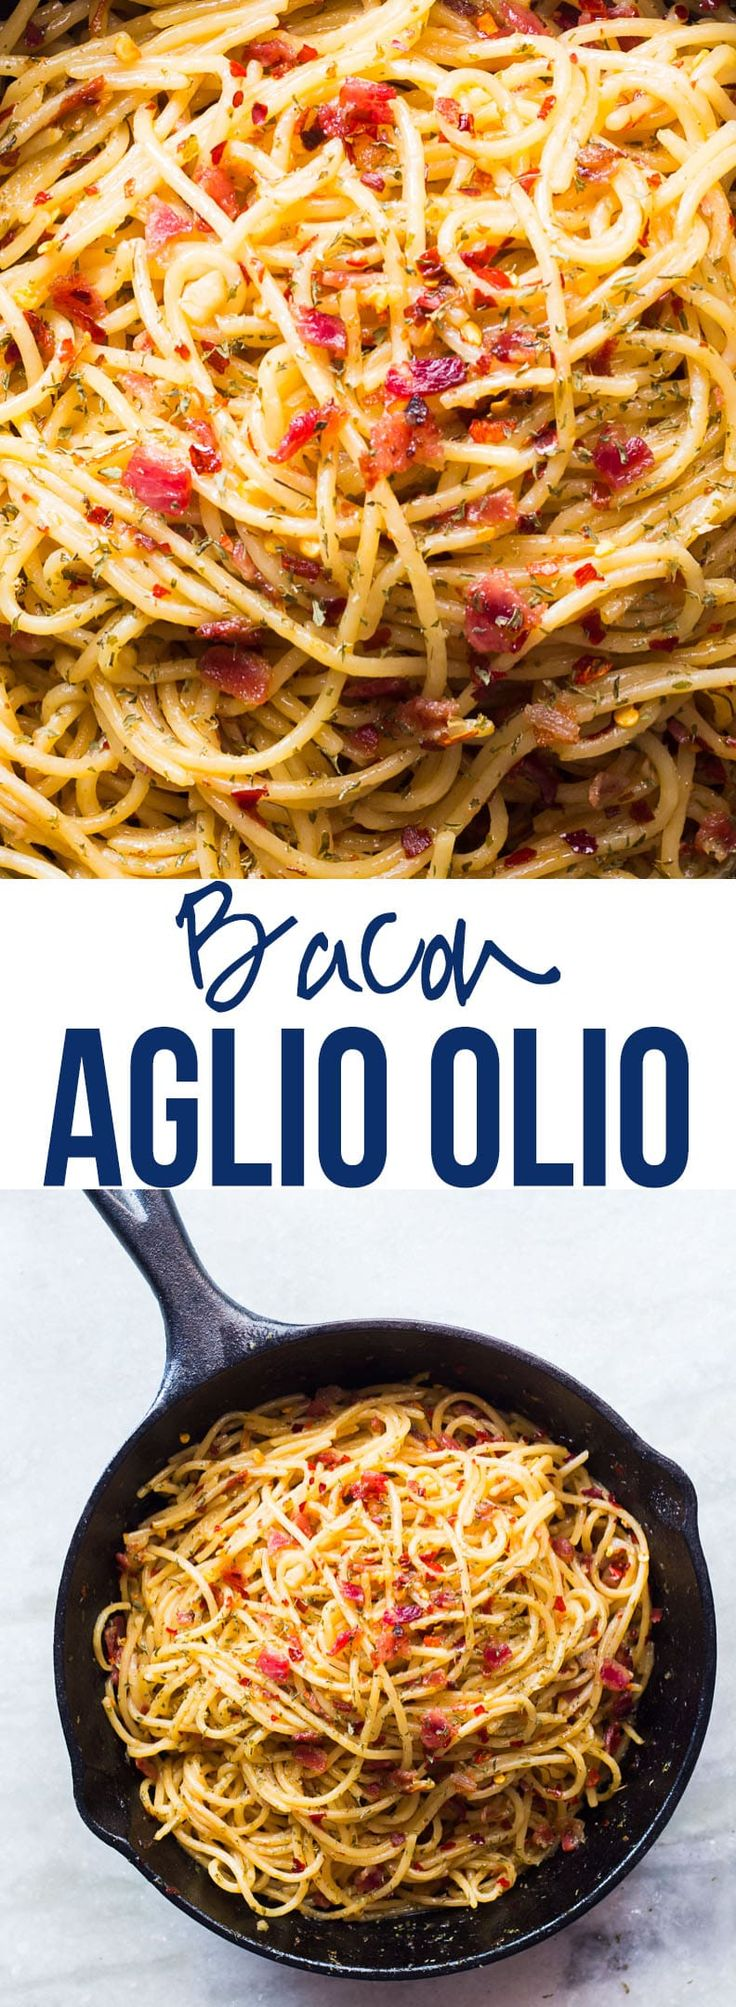 5 Ingredient Bacon Spaghetti Aglio Olio Easy Bacon Recipesquick